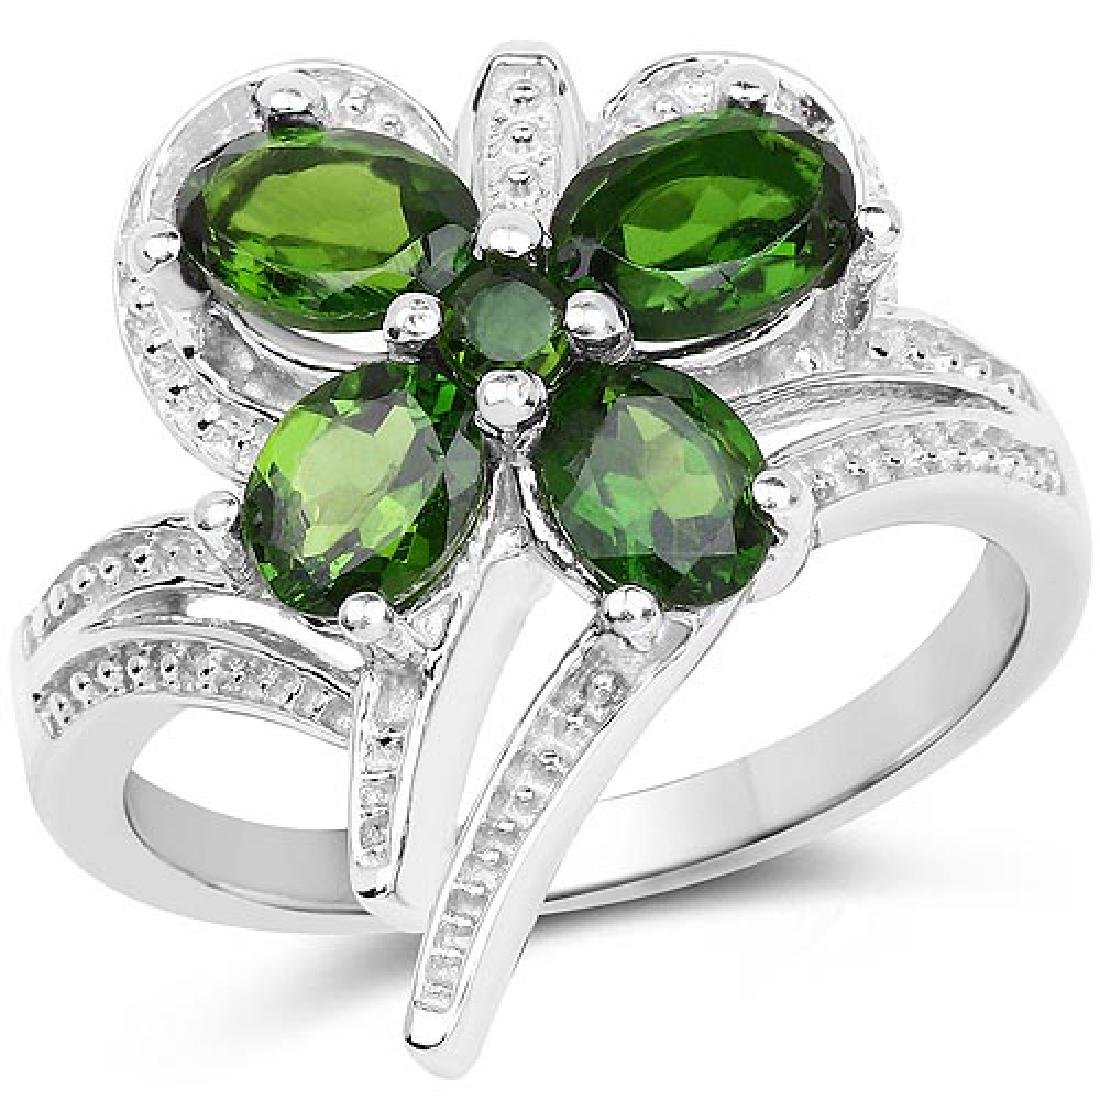 1.60 Carat Genuine Chrome Diopside and Chrome Diopside